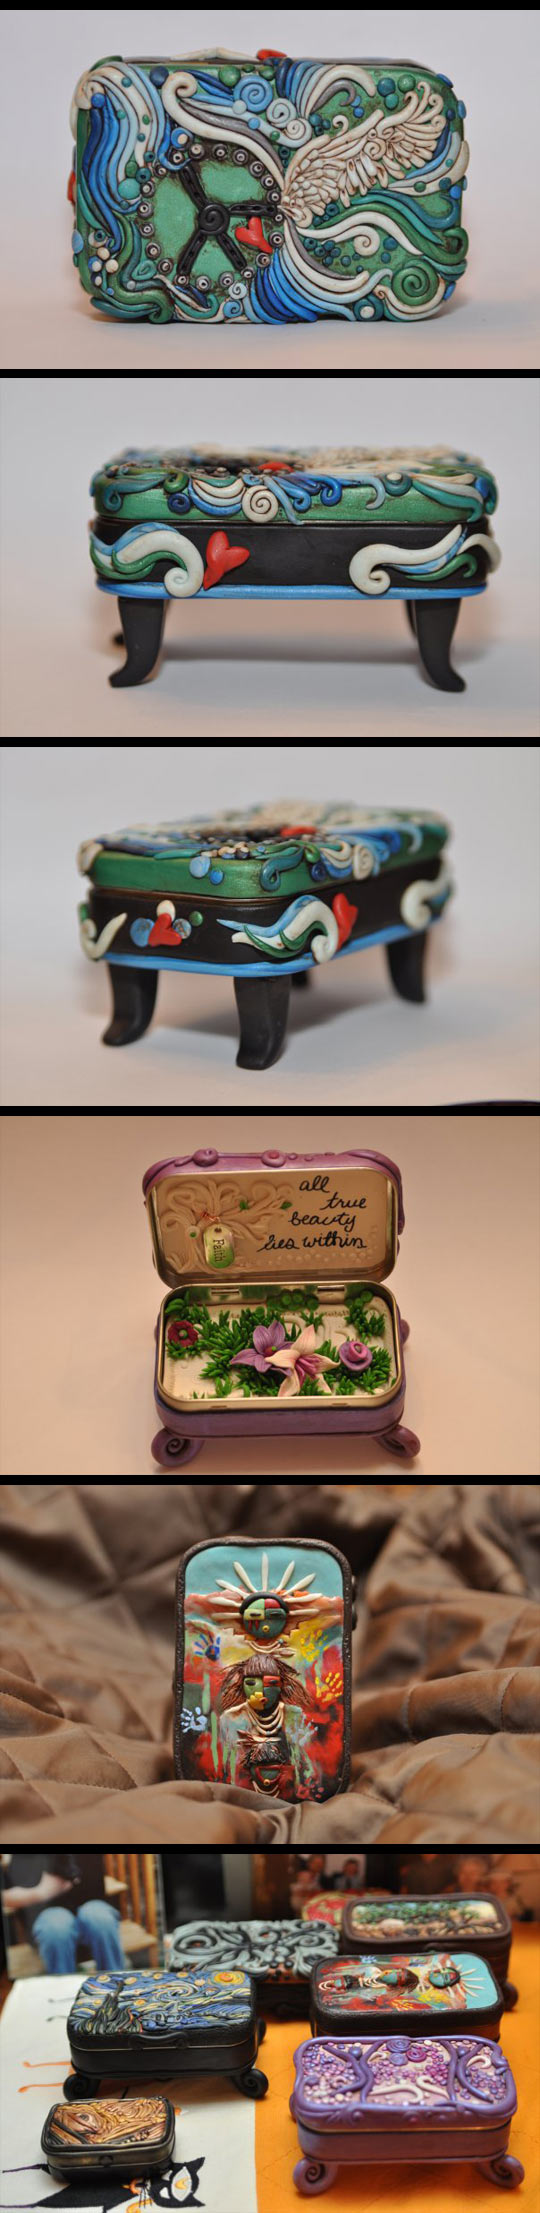 cool-art-polymer-clay-Altoid-tins-peace